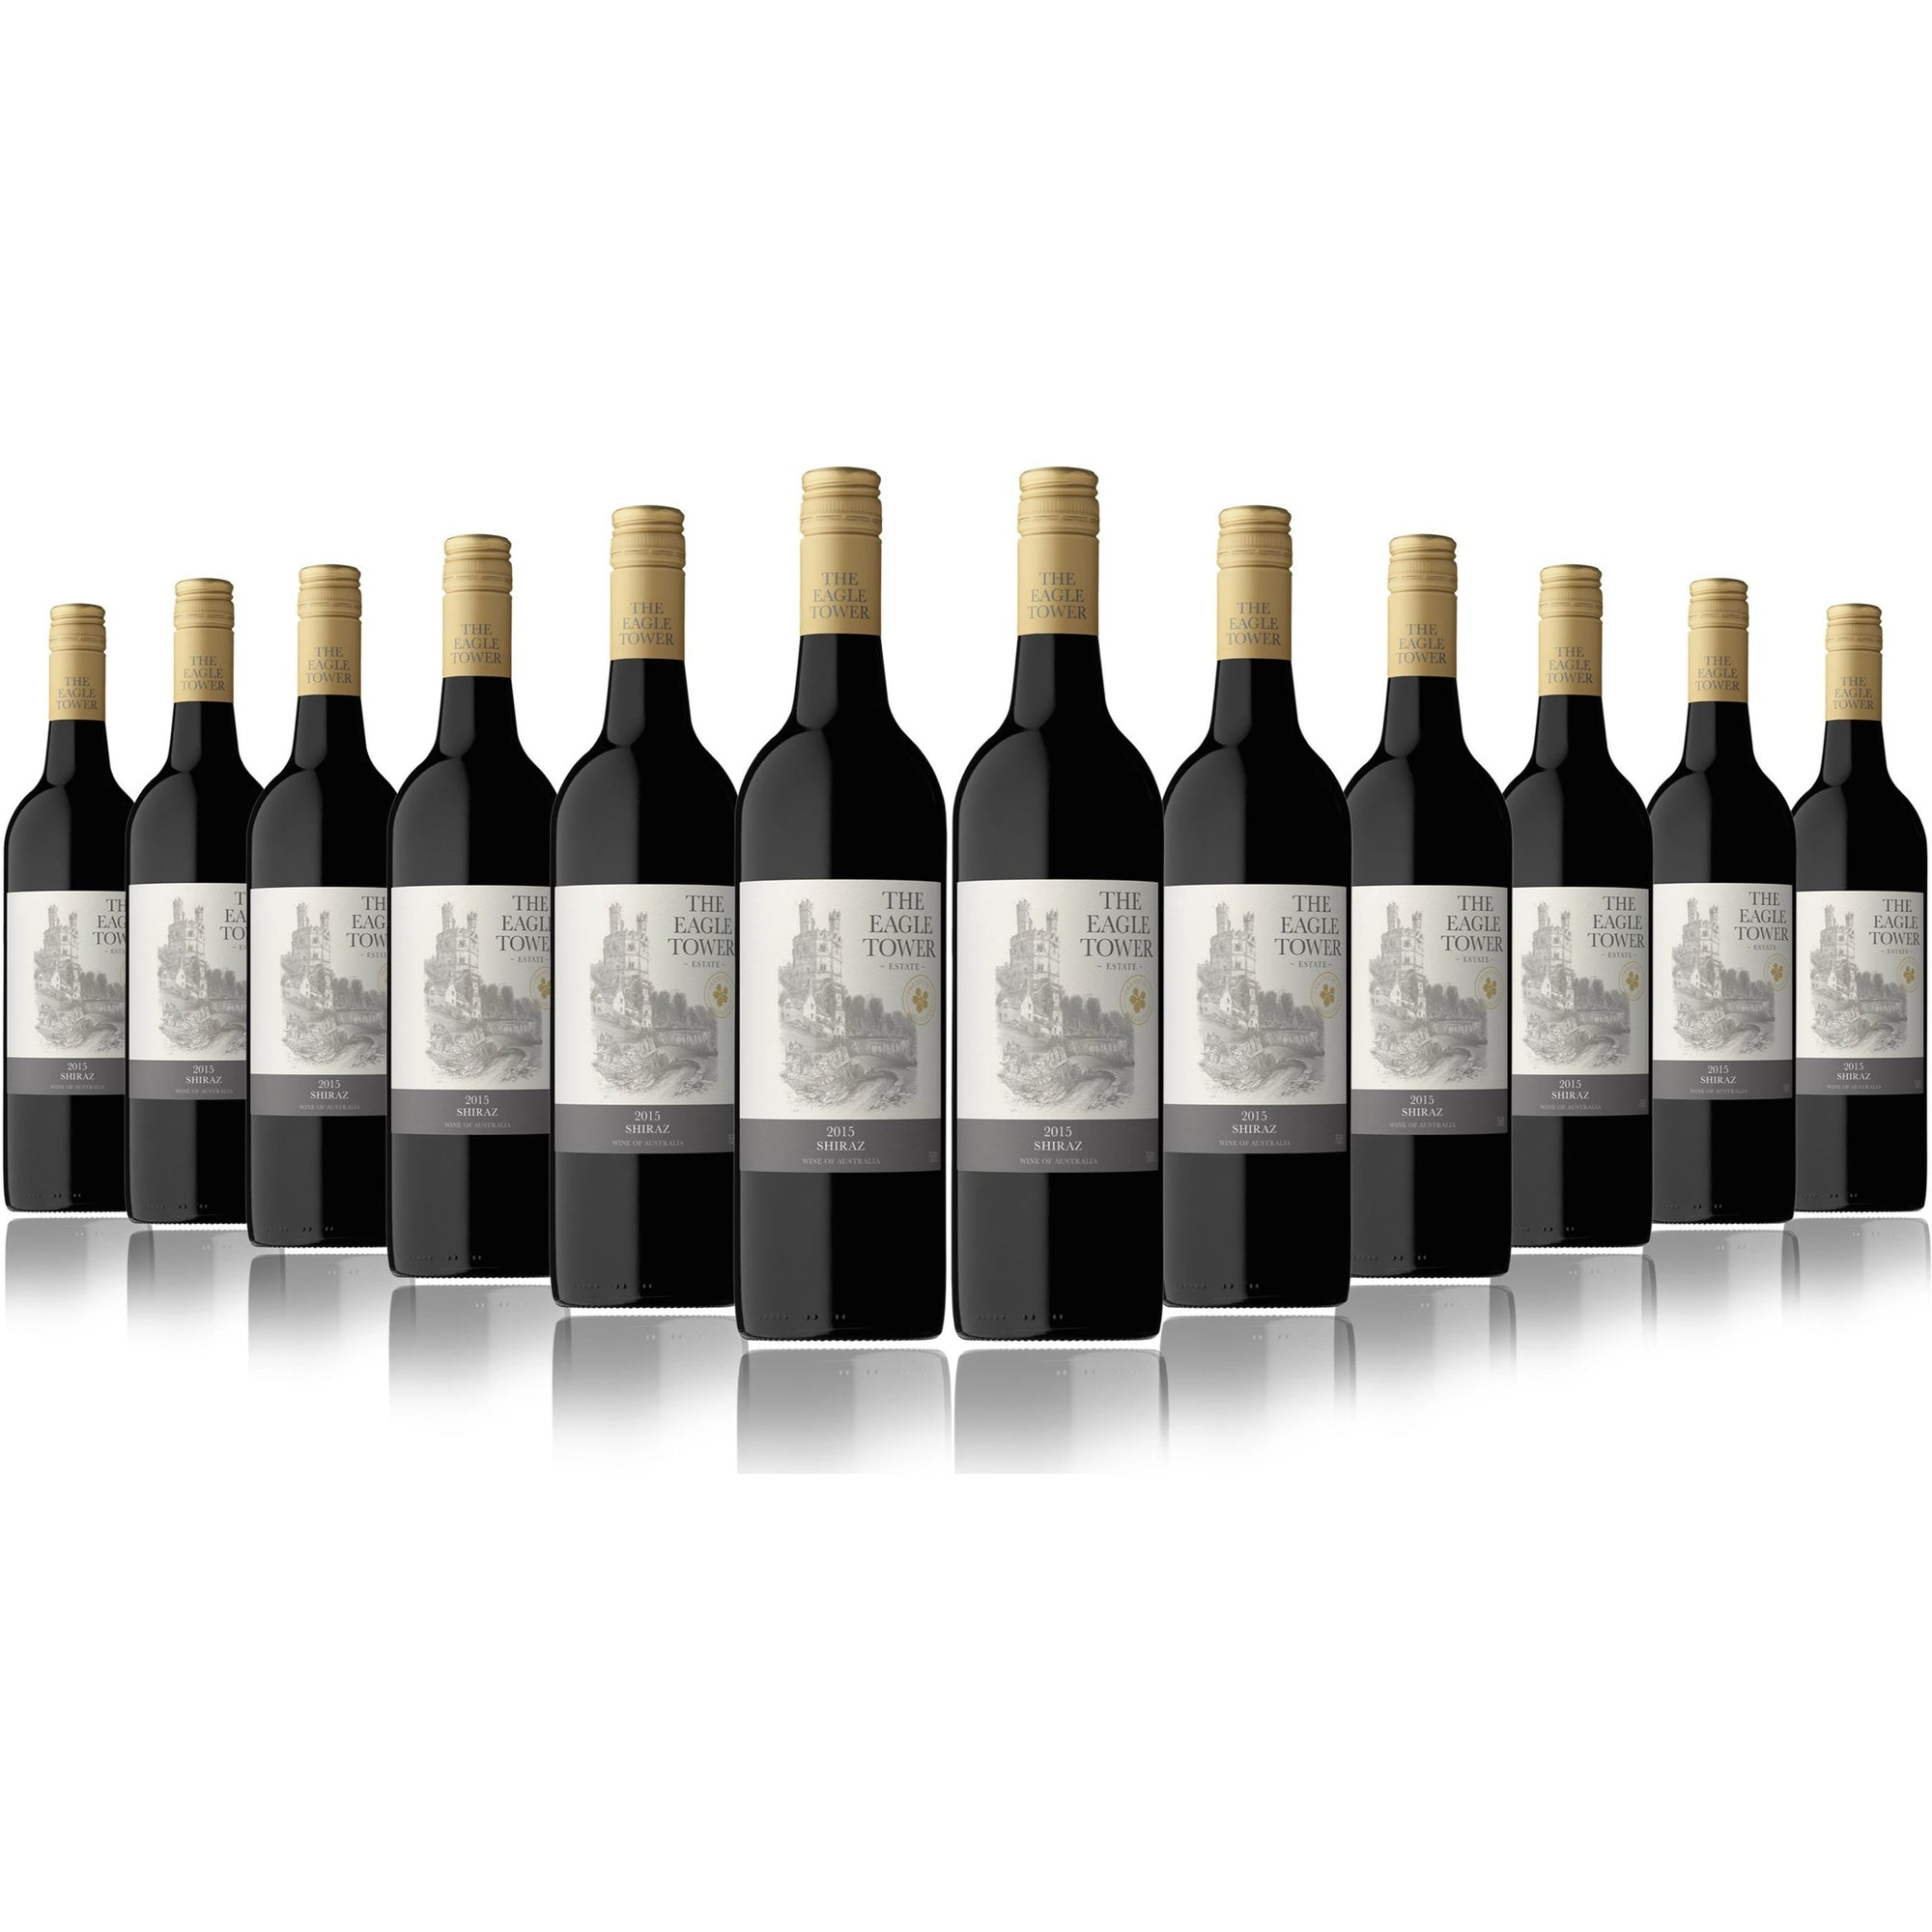 Eagle Tower Shiraz NV (12 Bottles)